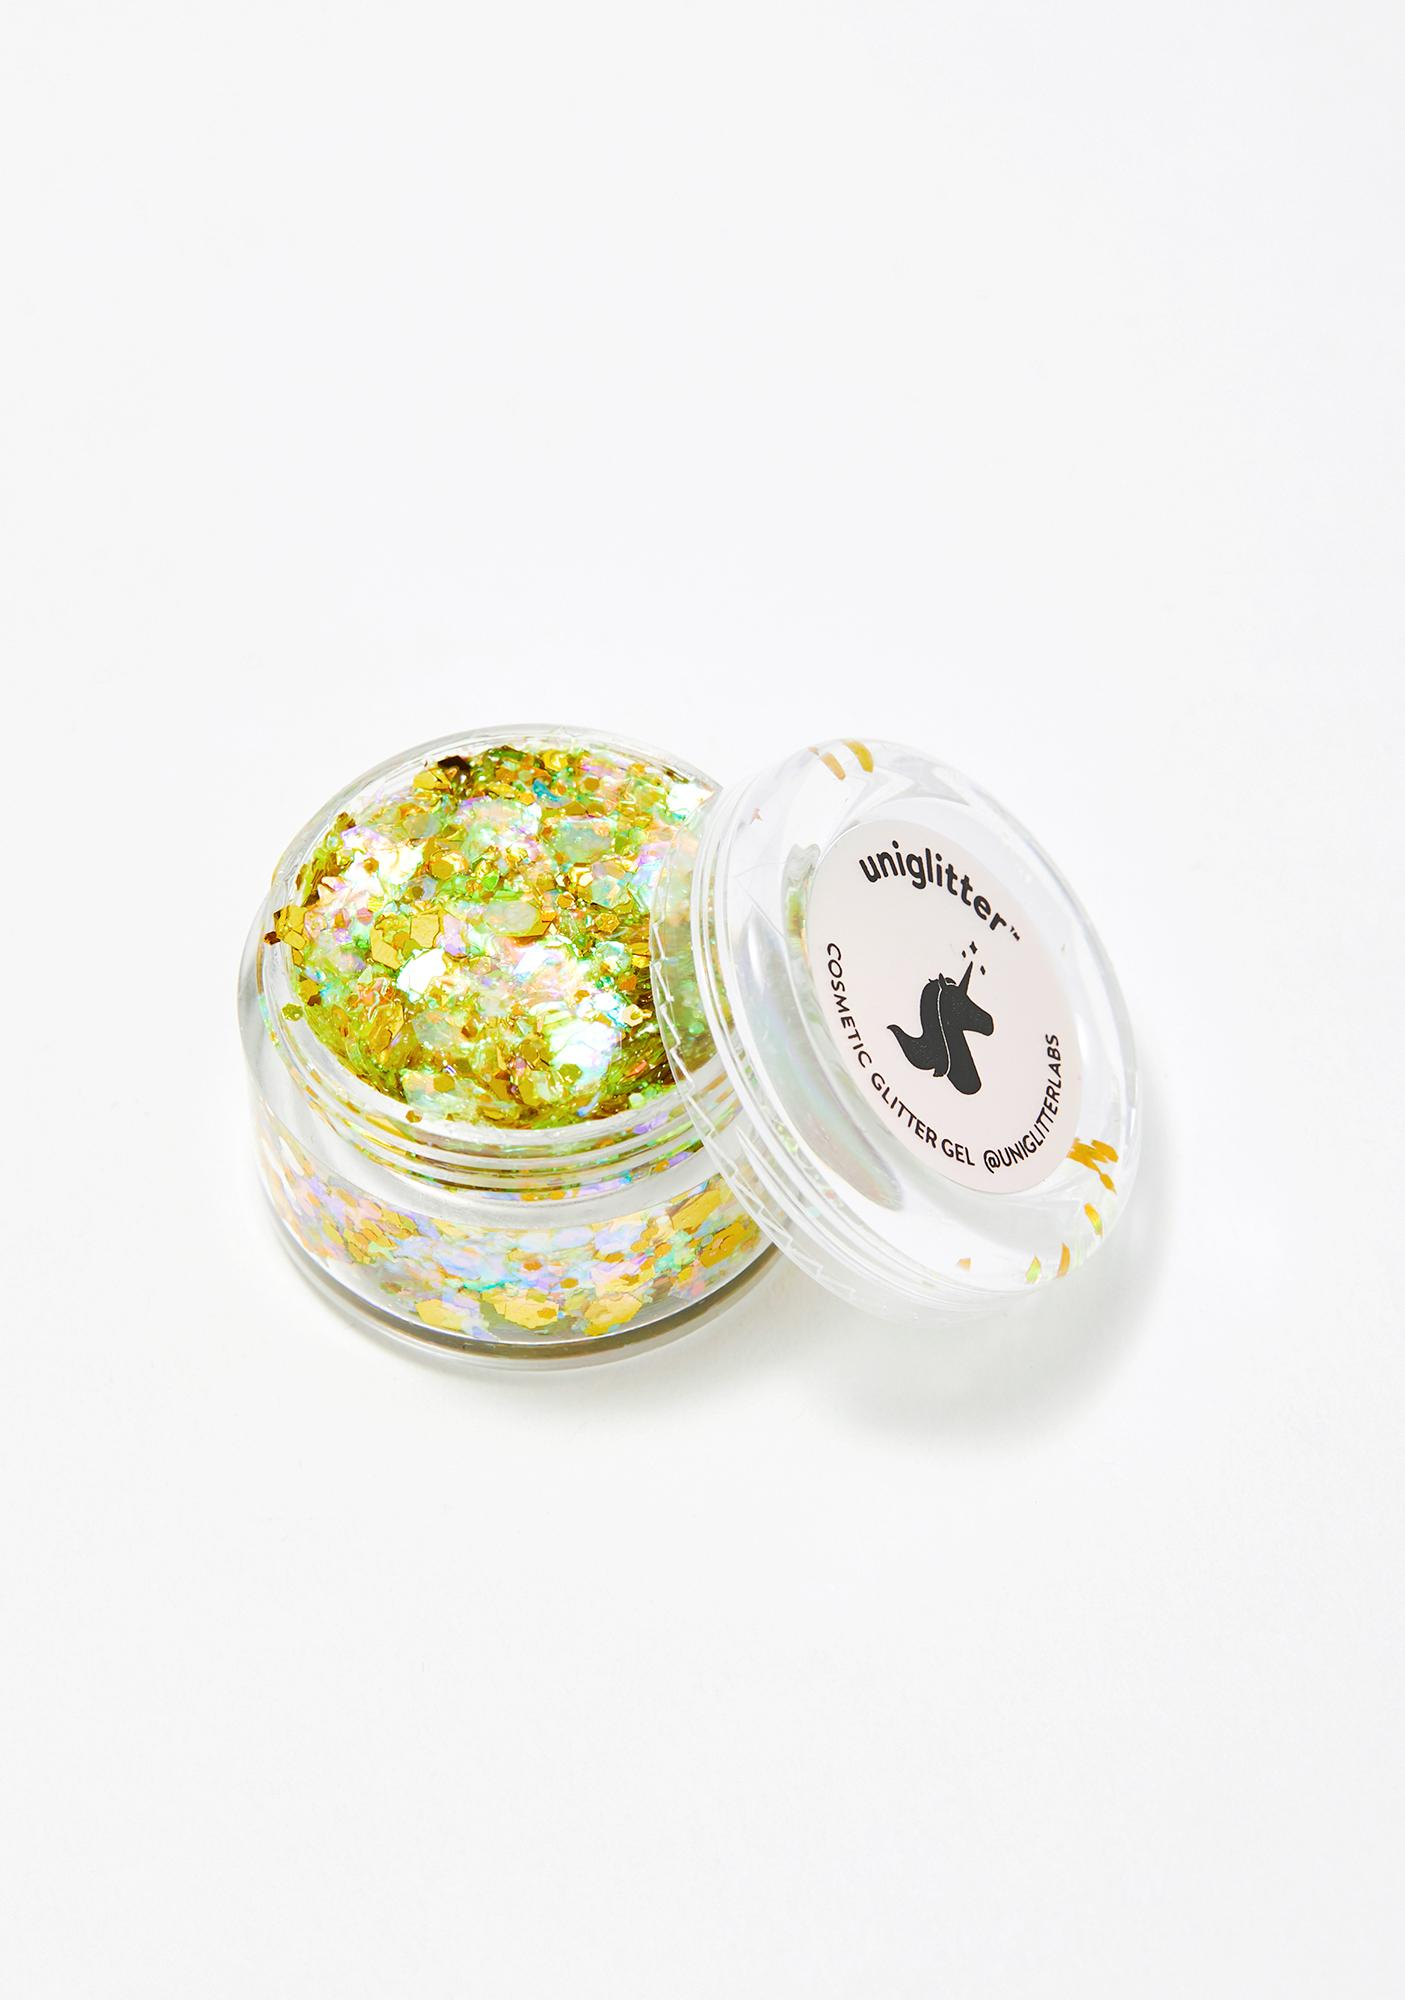 Uniglitter Sunburst Yellow UV Unicorn Glitter Gel